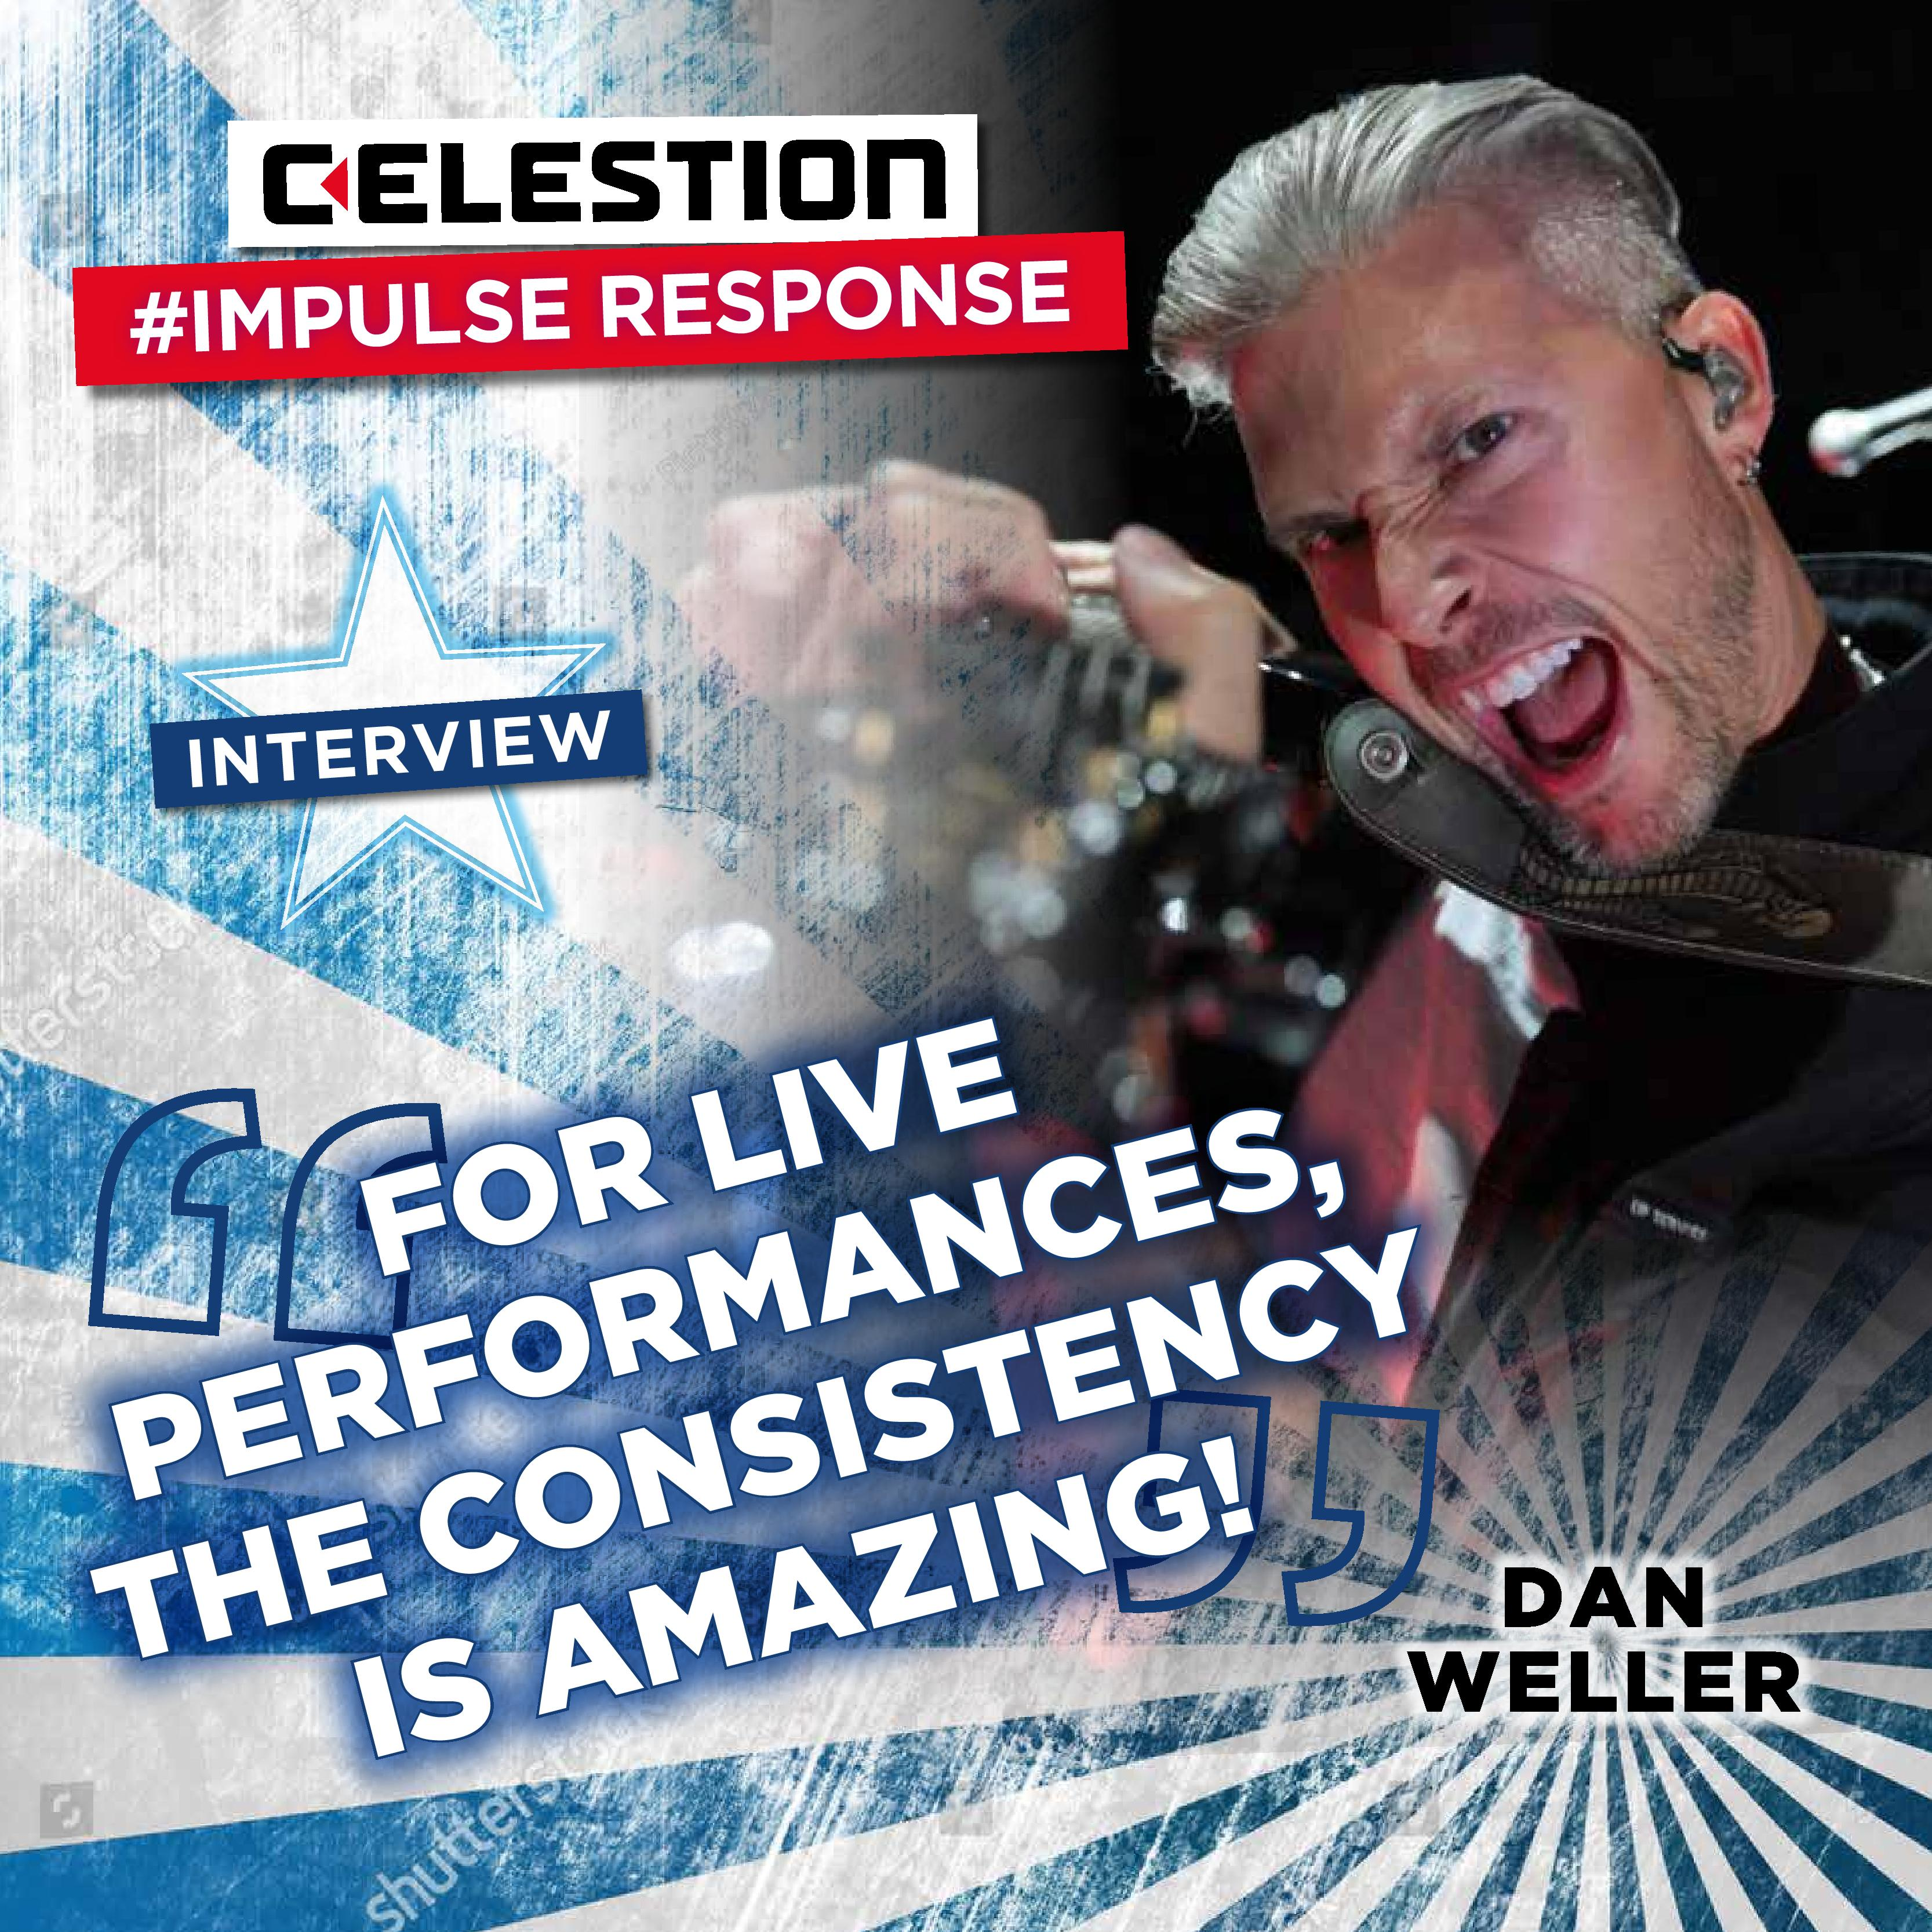 Celestion Impulse Responses – The Dan Weller Interview